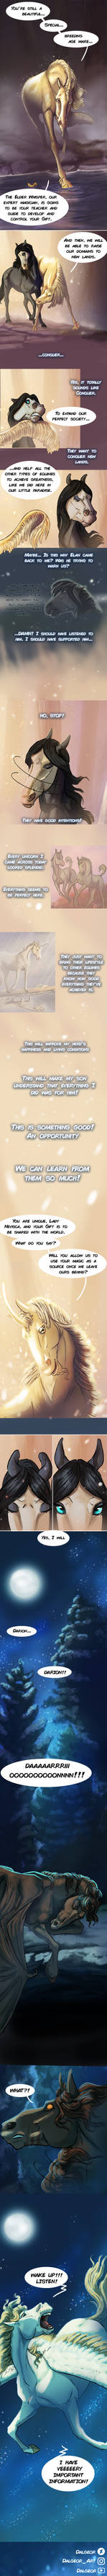 Equus Siderae - Page 60 and 61